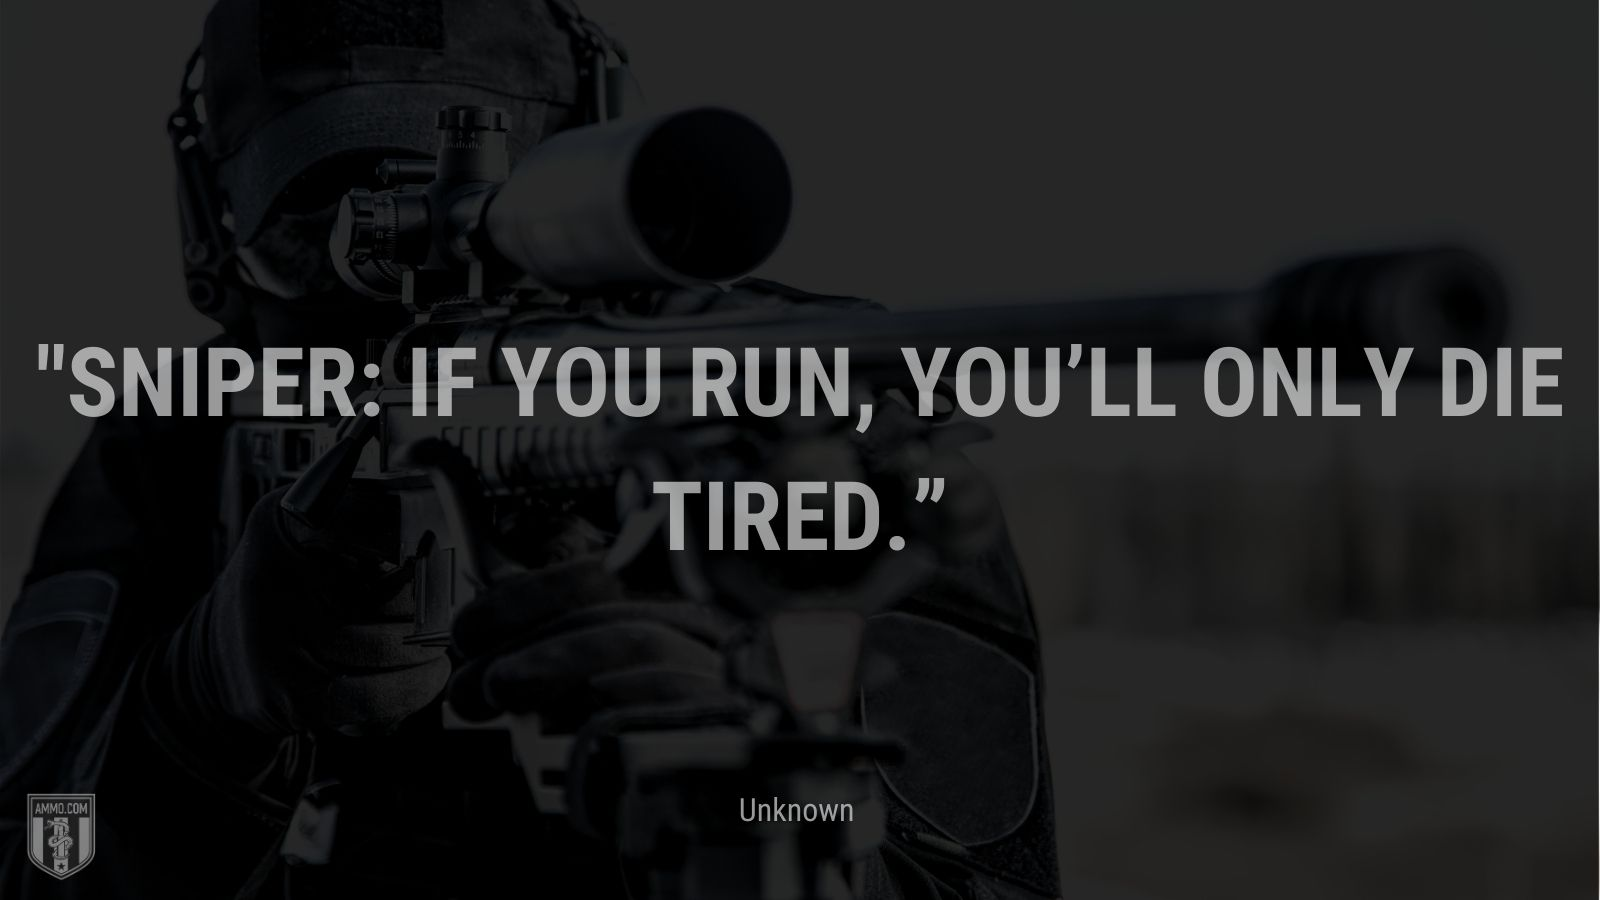 """""""Sniper: If you run, you'll only die tired."""" - Unknown"""